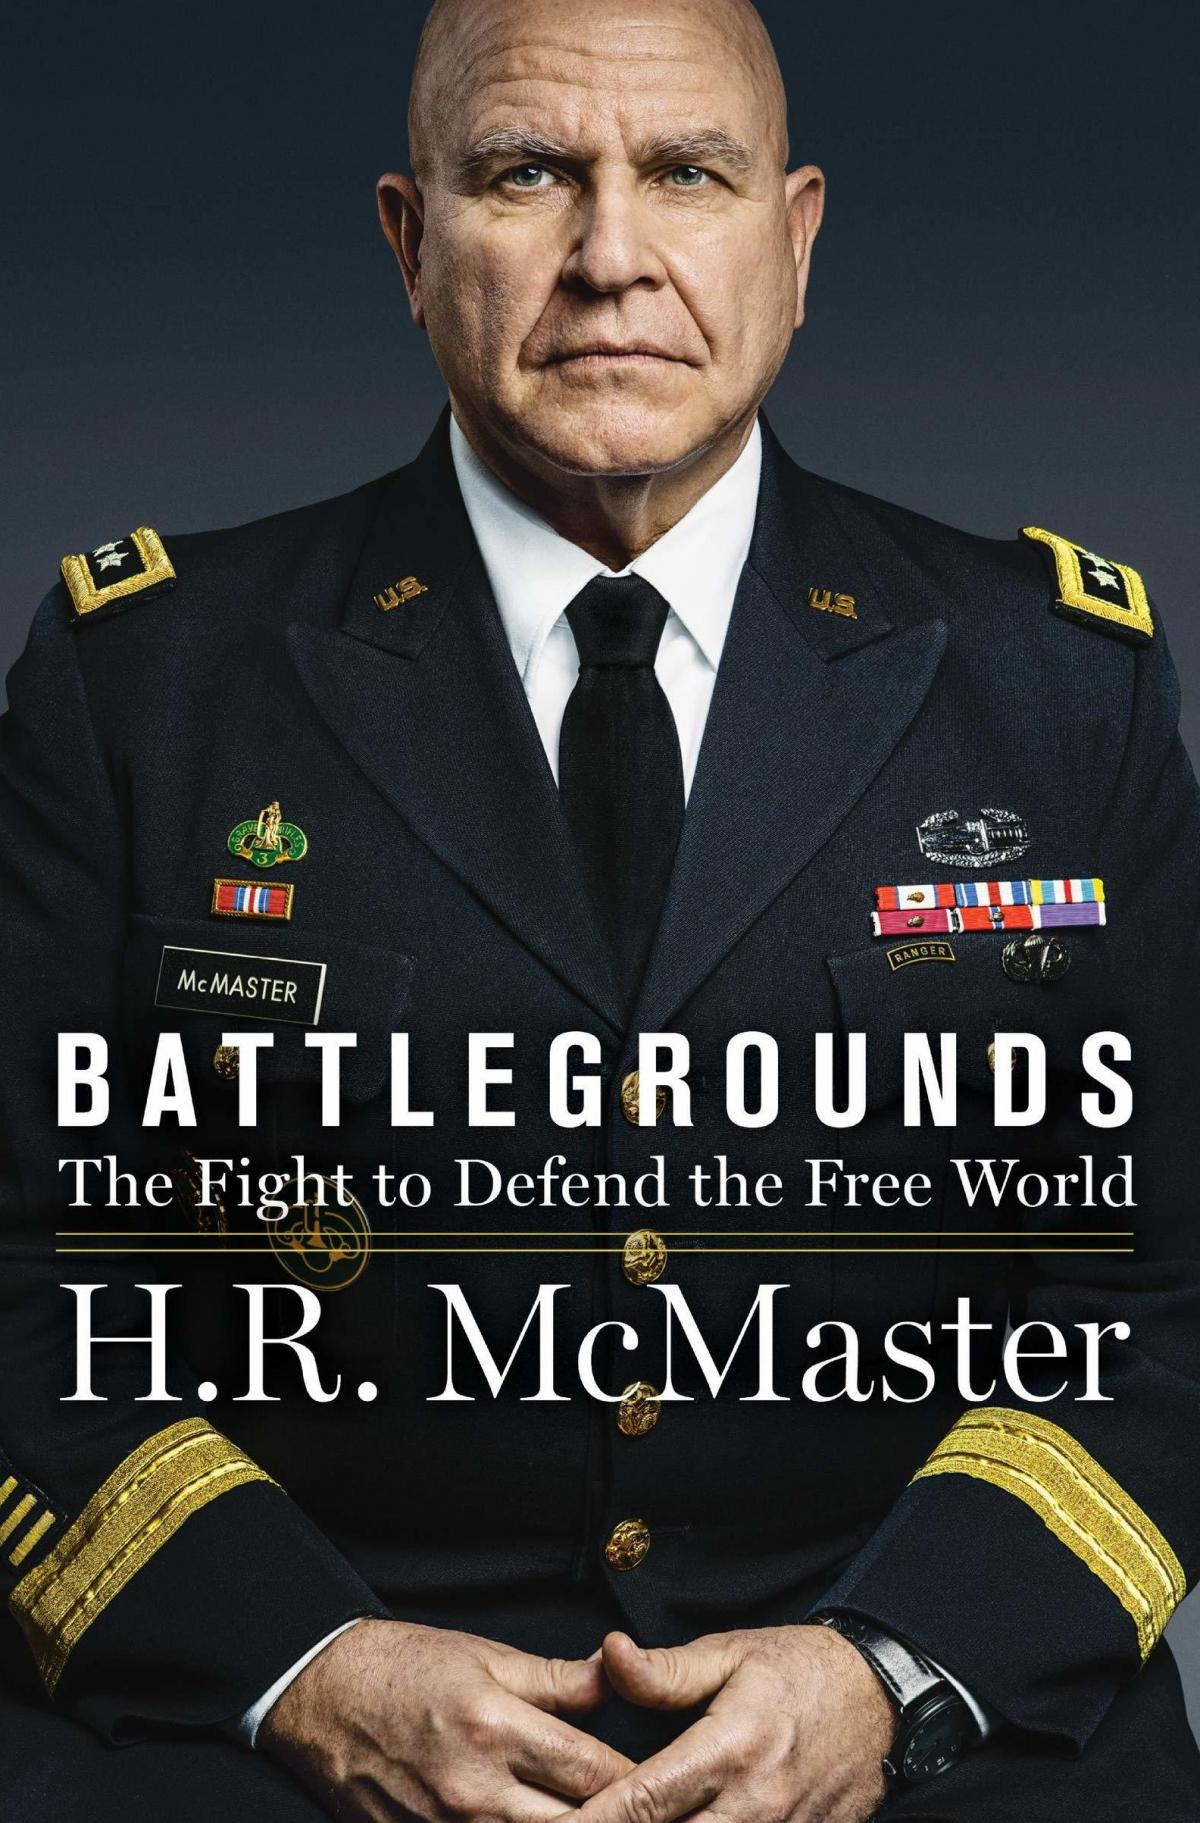 Battlegrounds: The Fight to Defend the Free World, H.R. McMaster